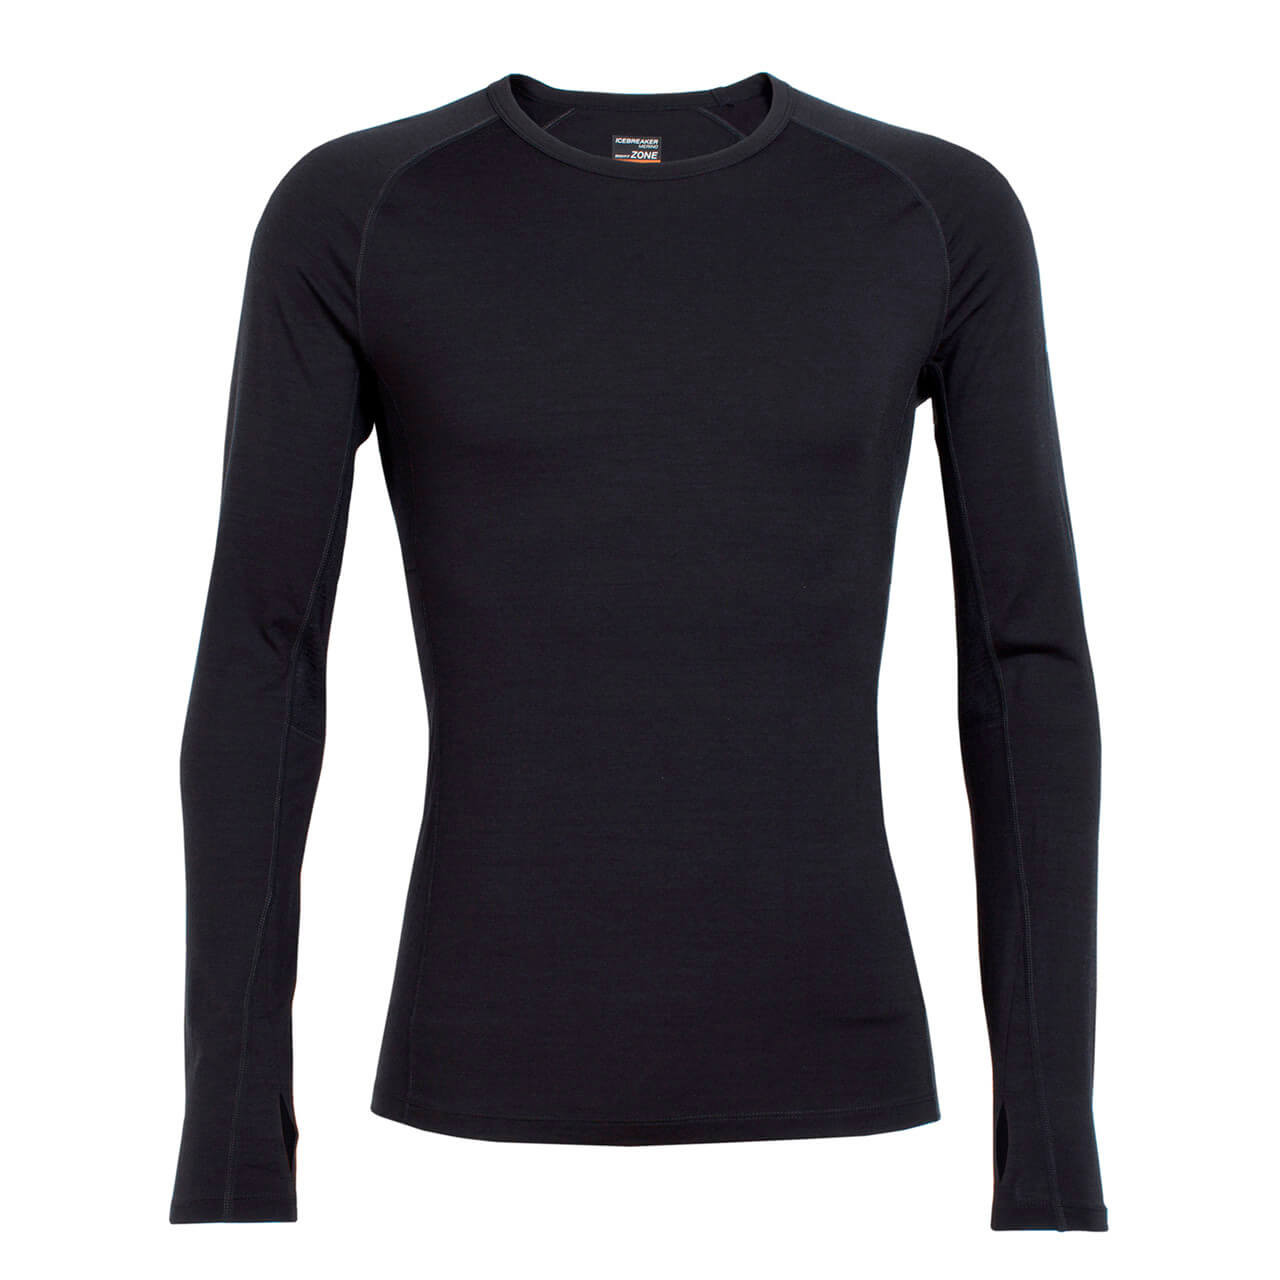 682dbab54 Icebreaker Men's Zone Long Sleeve Crewe - Black